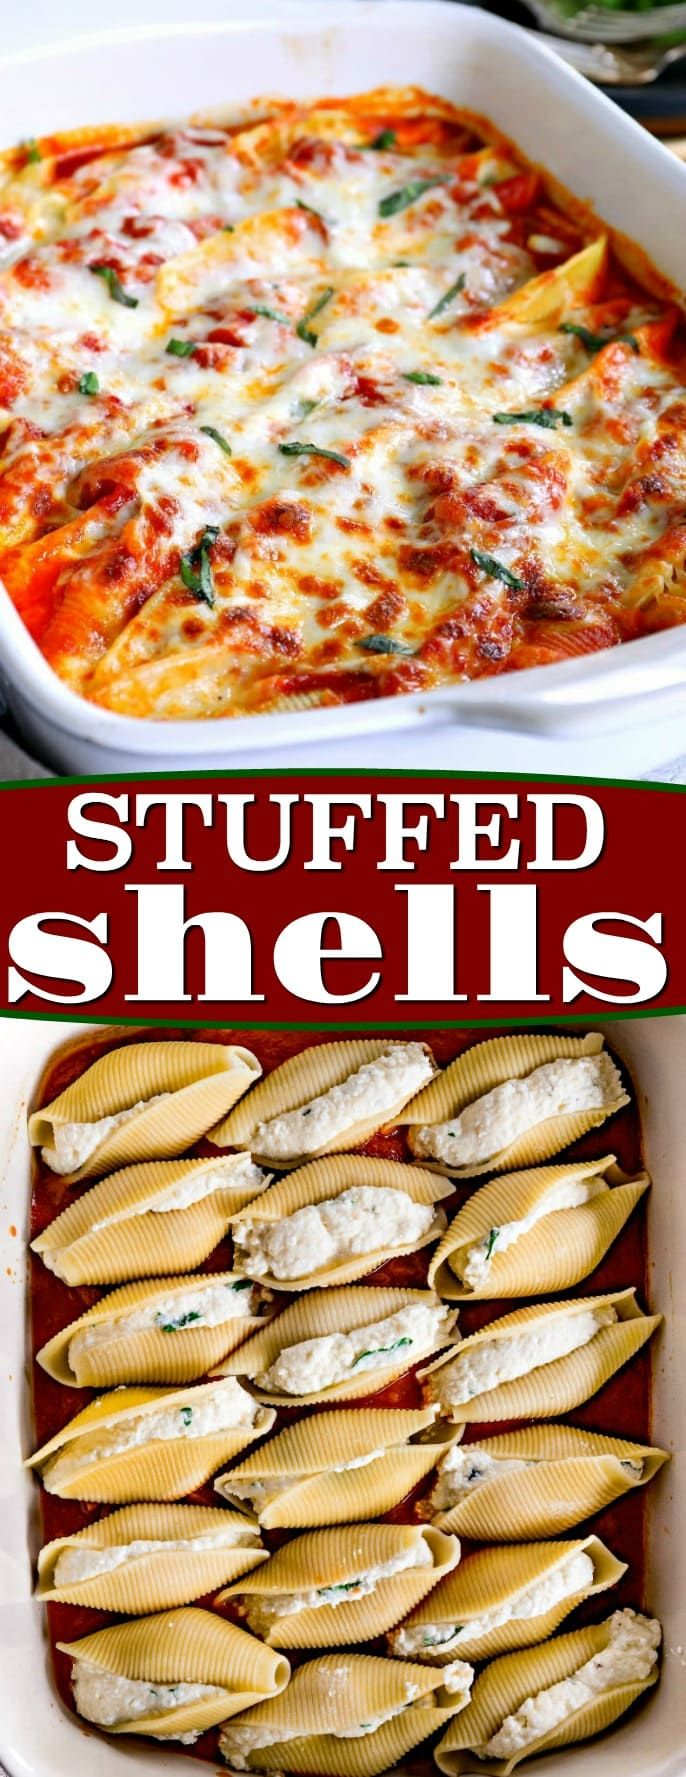 Delicious Stuffed Shells are the perfect easy, weeknight dinner. Jumbo pasta she…